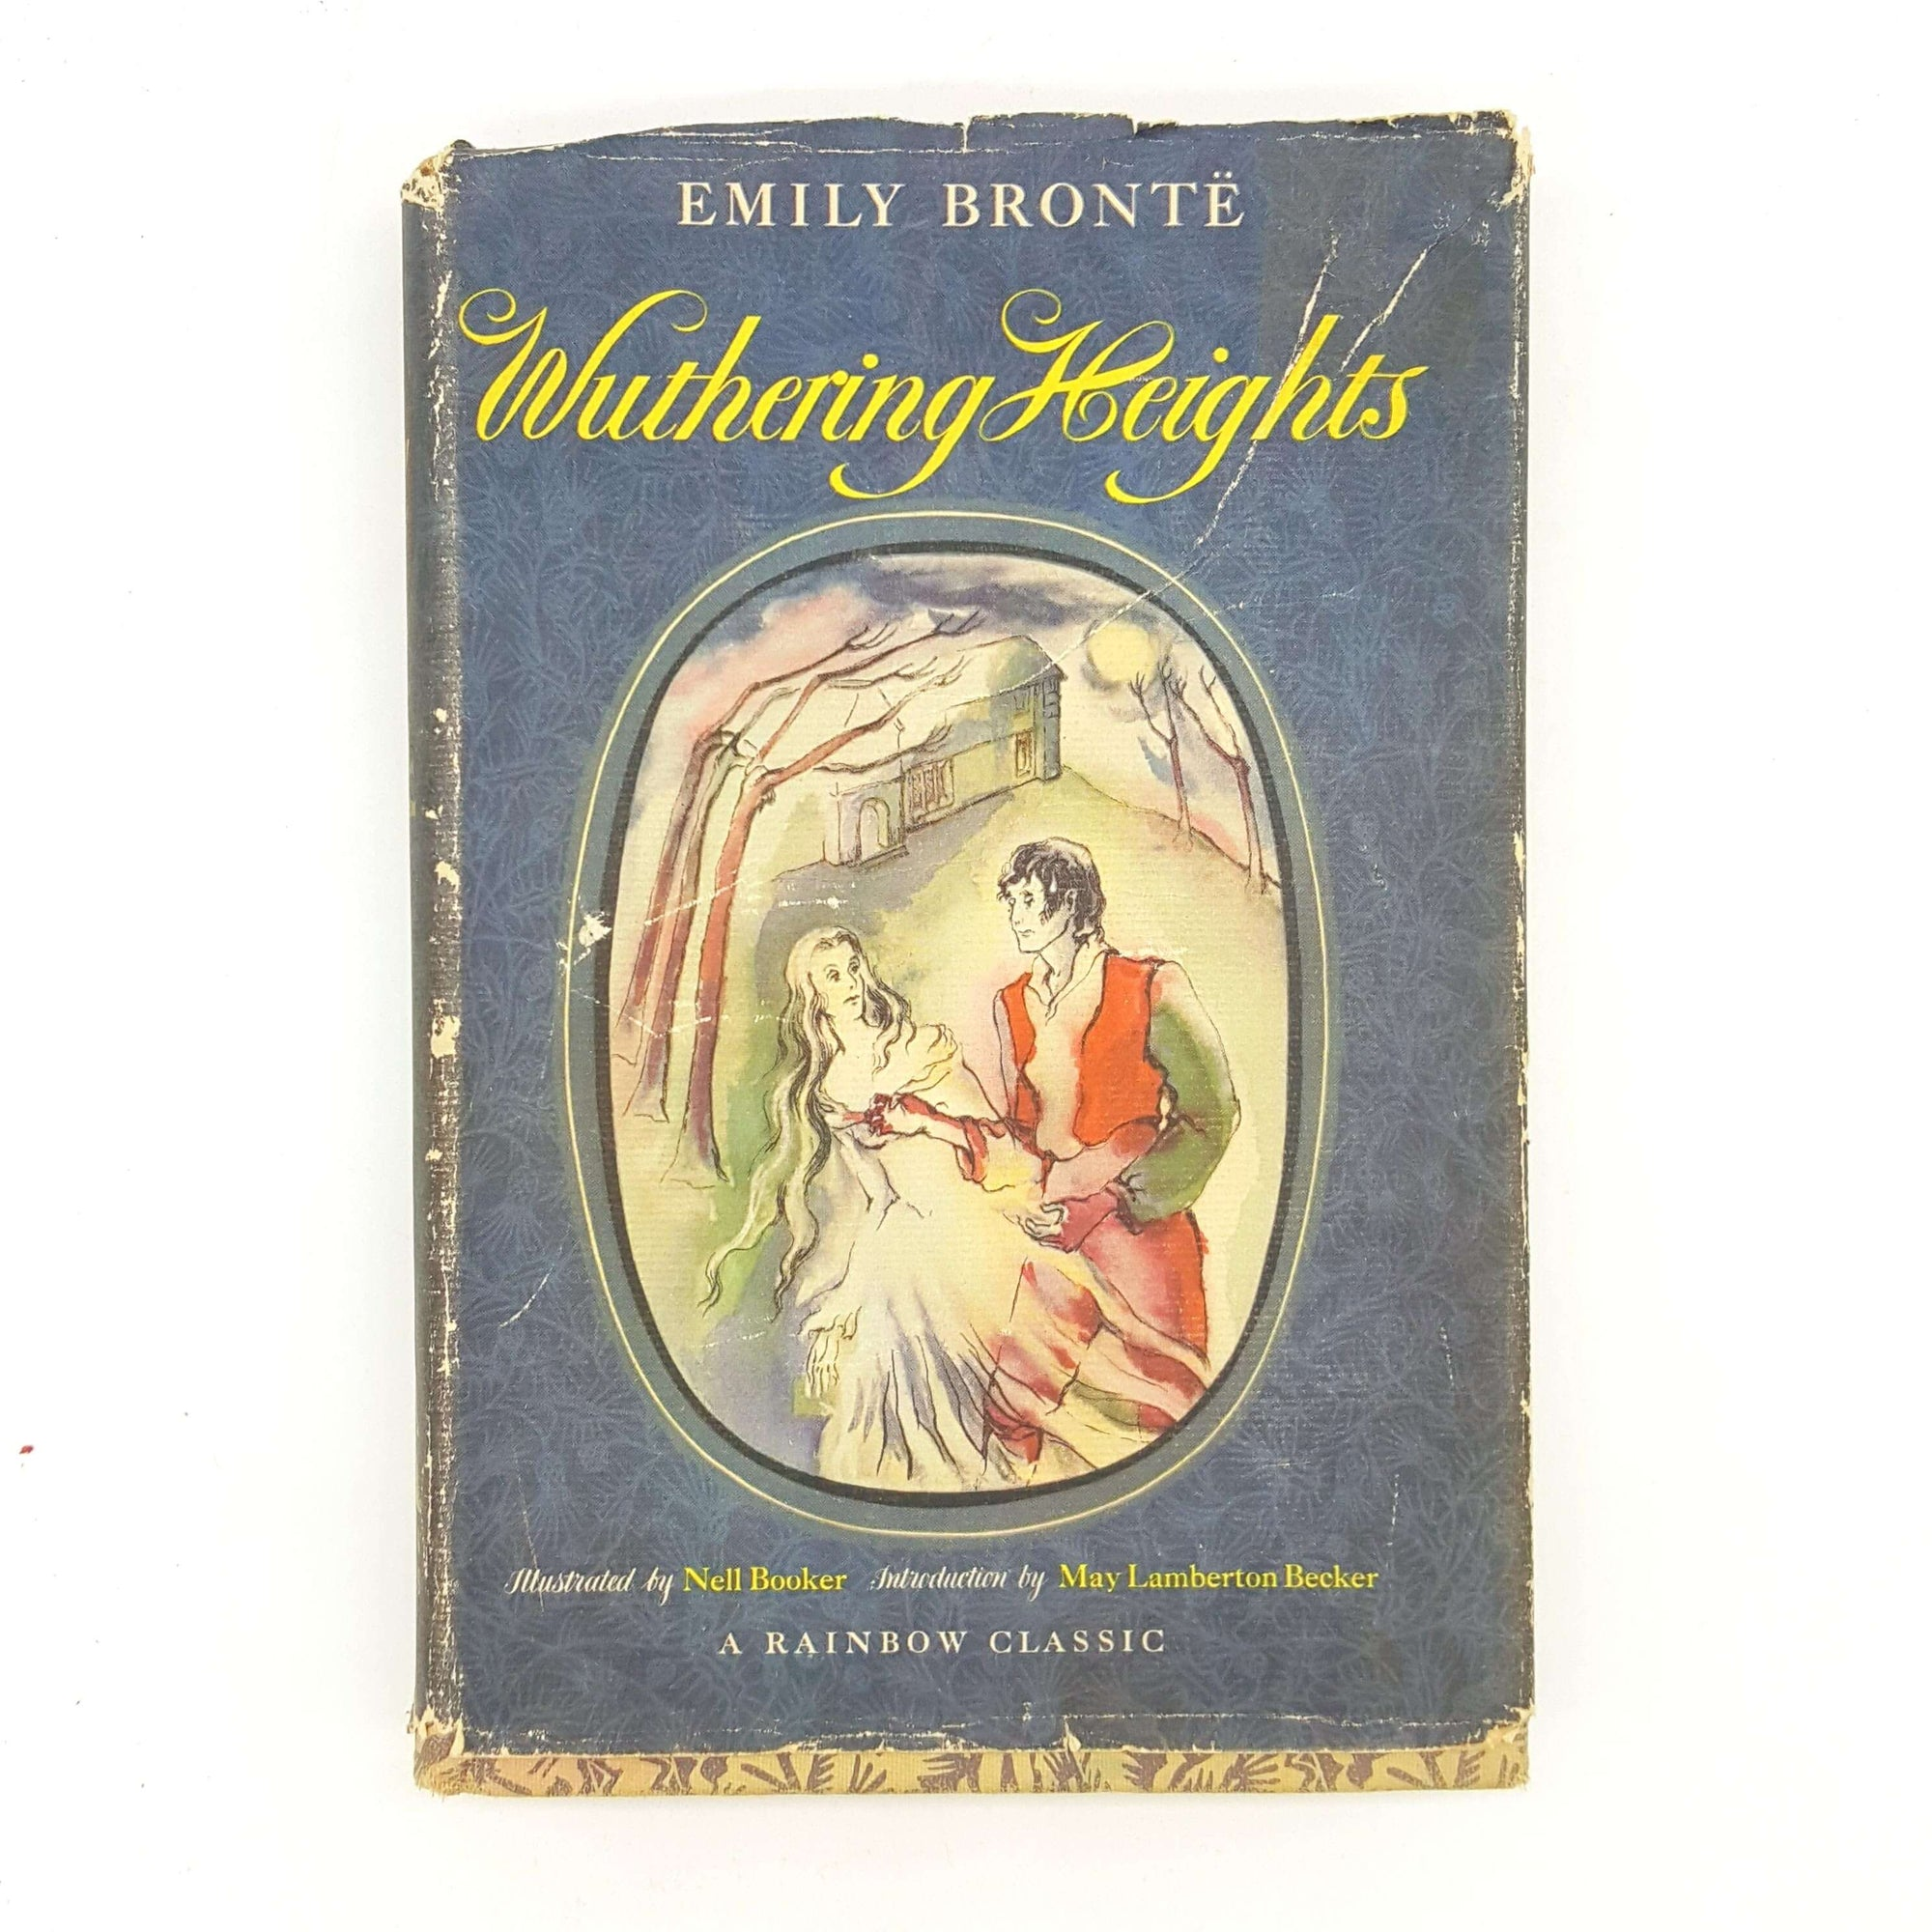 Emily Brontë's Wuthering Heights 1947 - Rainbow Classic Country House Library